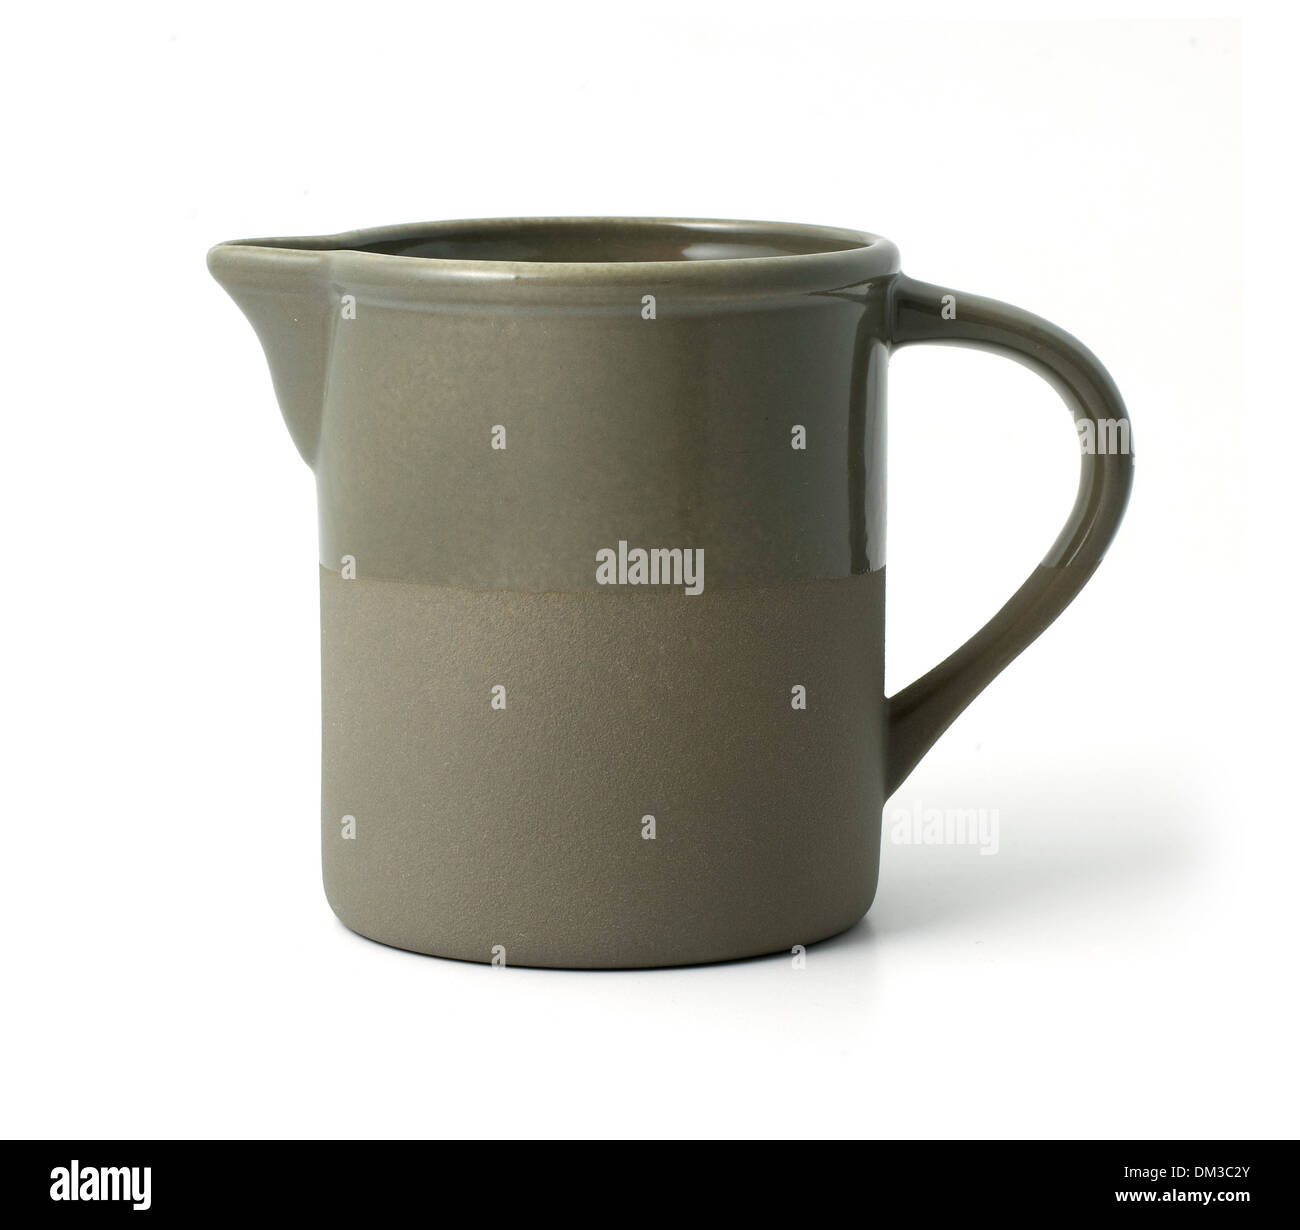 Grey earthenware jug, cut out on white background - Stock Image